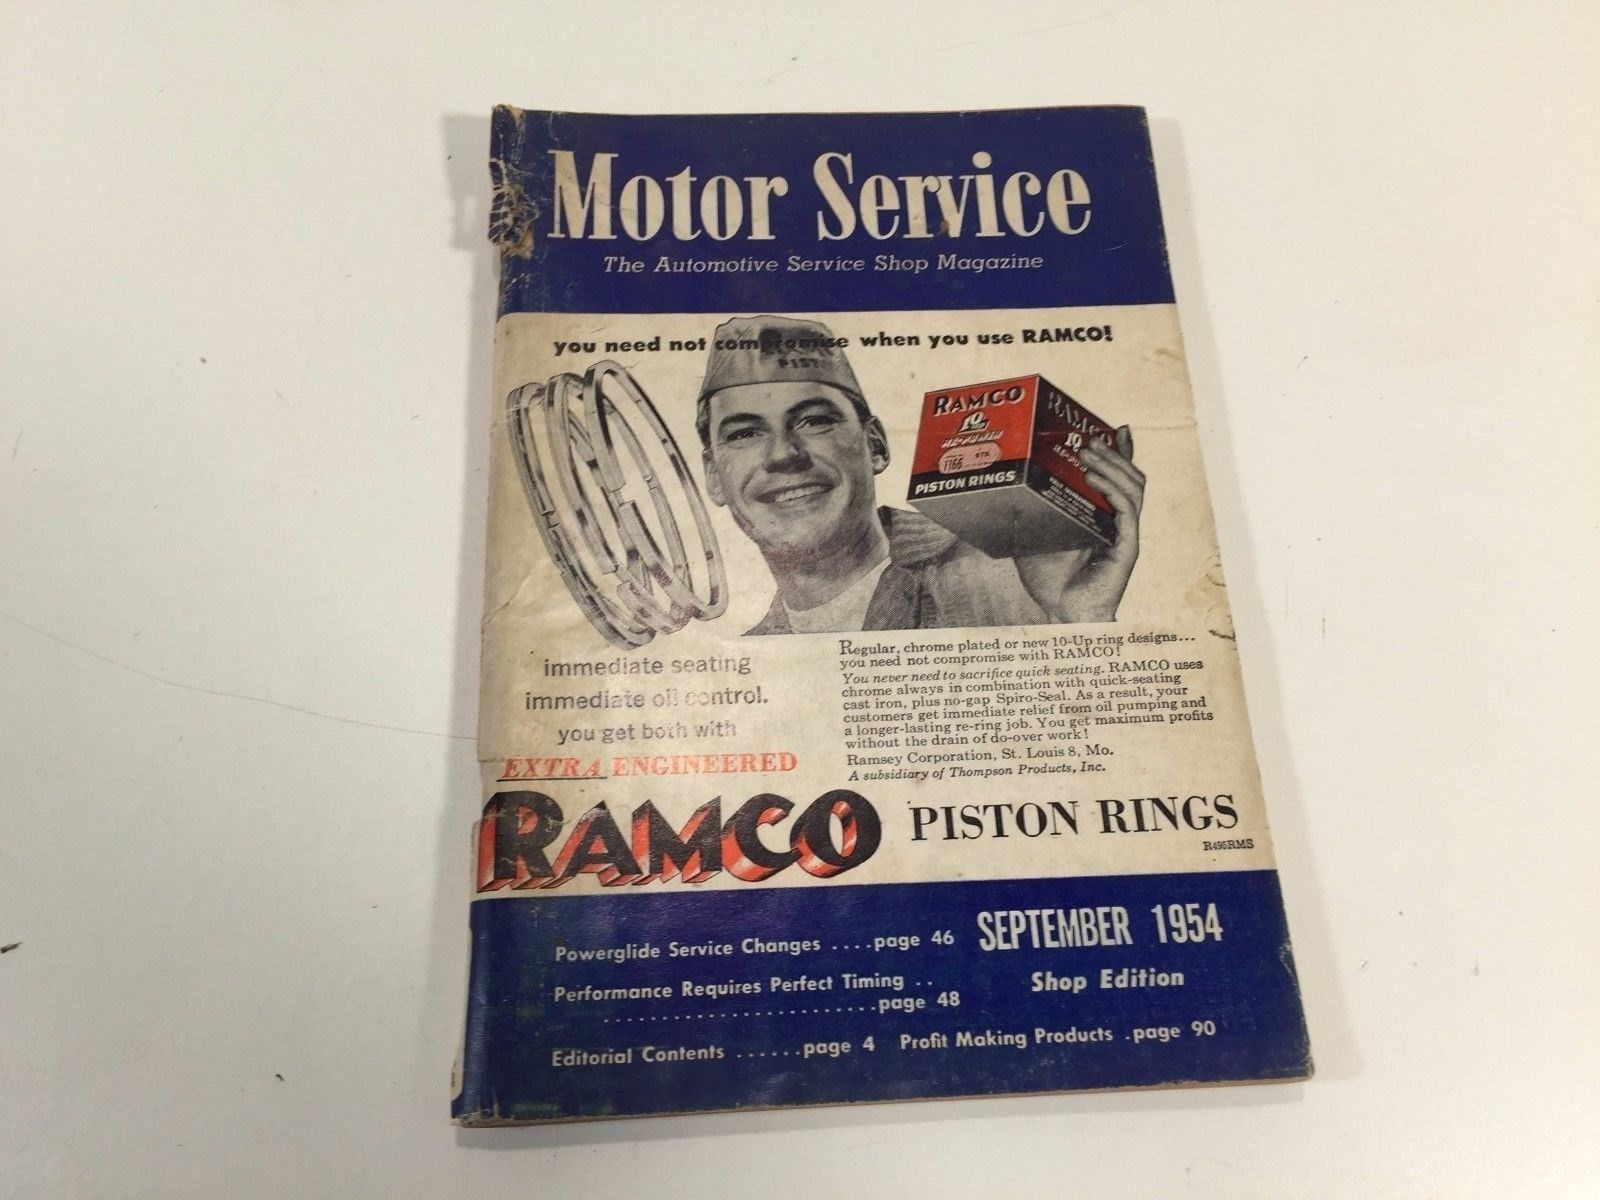 Motor Service Automotive Shop Magazine September 1954